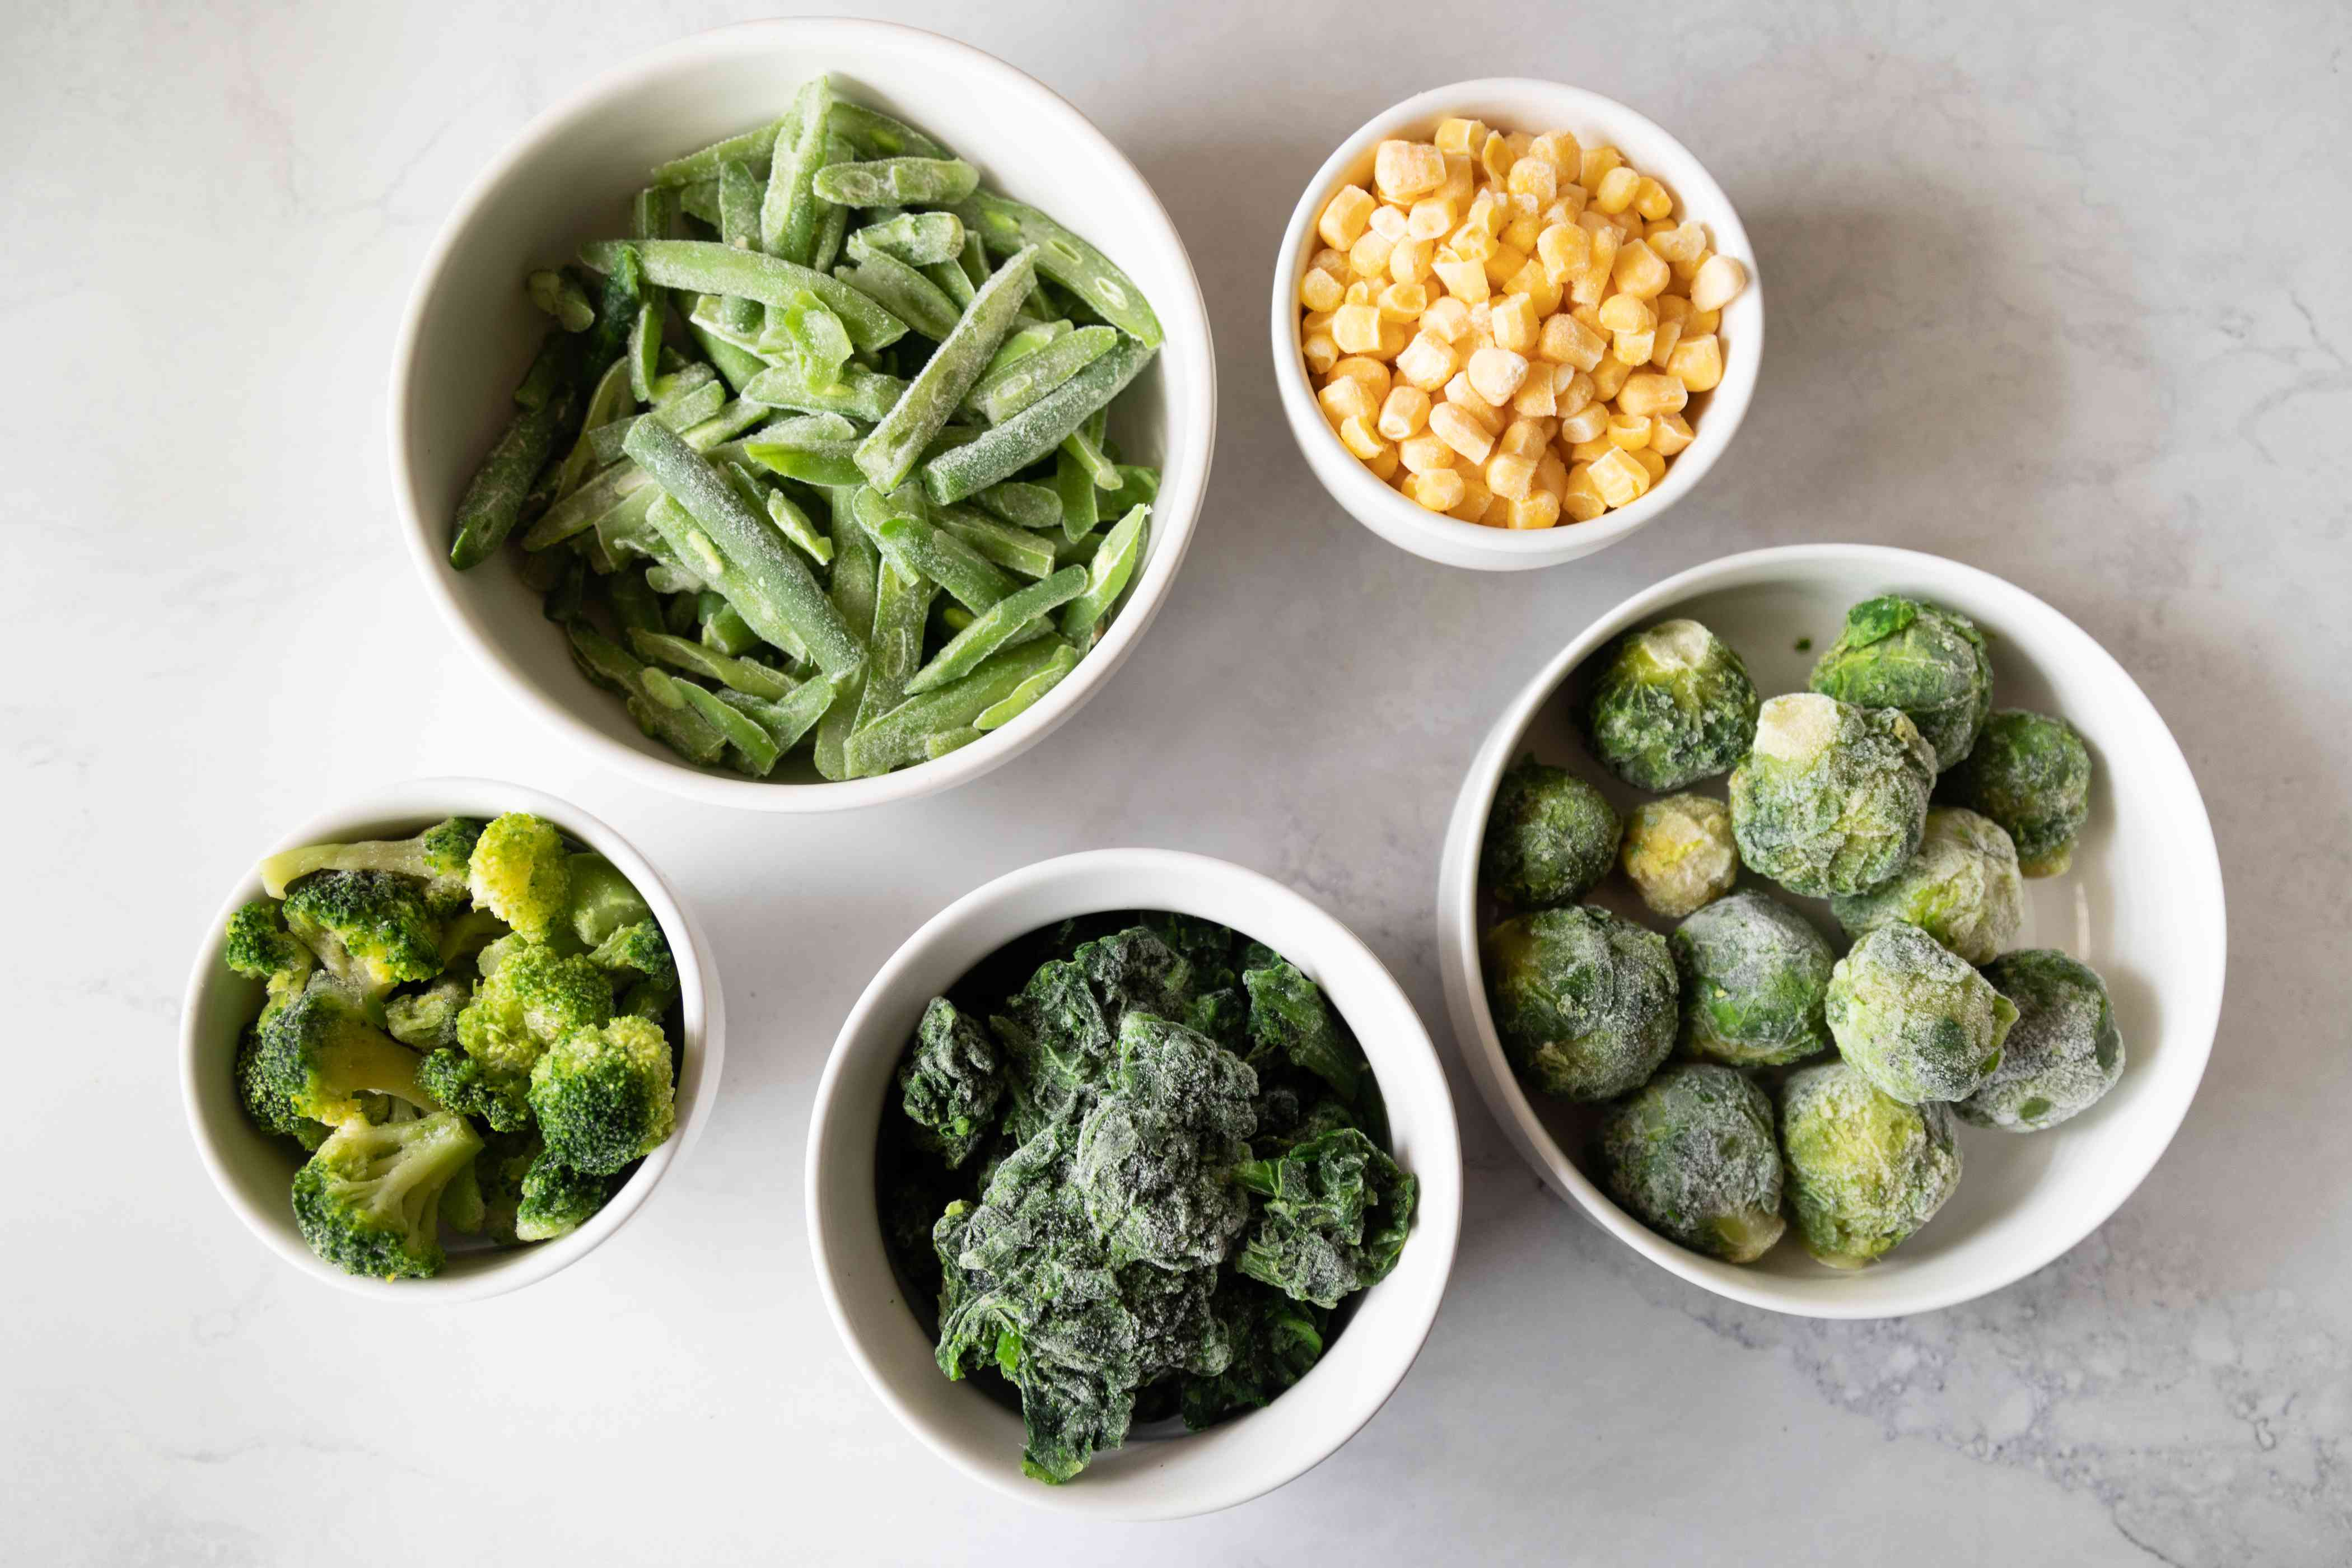 Frozen corn green beans broccoli brussels sprouts in white bowls